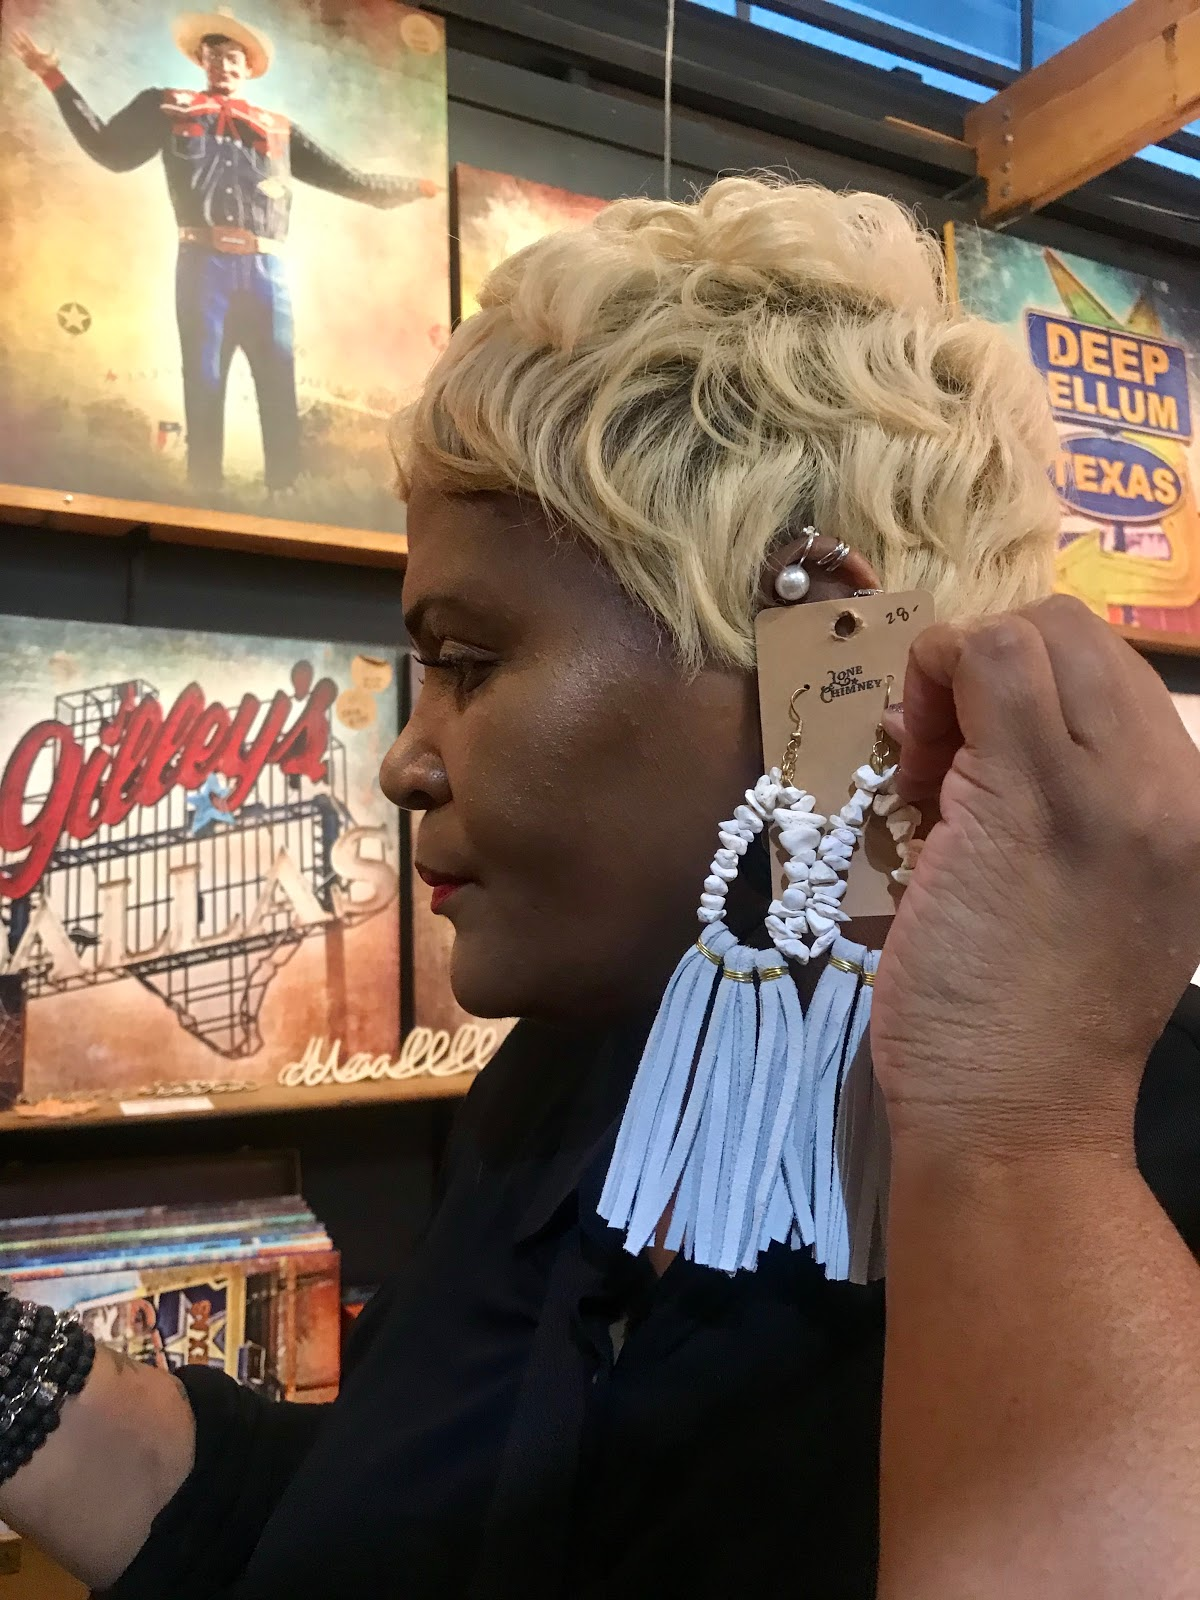 Tangie Bell Blogger trying on earring at the Dallas Farmers Market. The earrings she purchased were by Lone Chimney